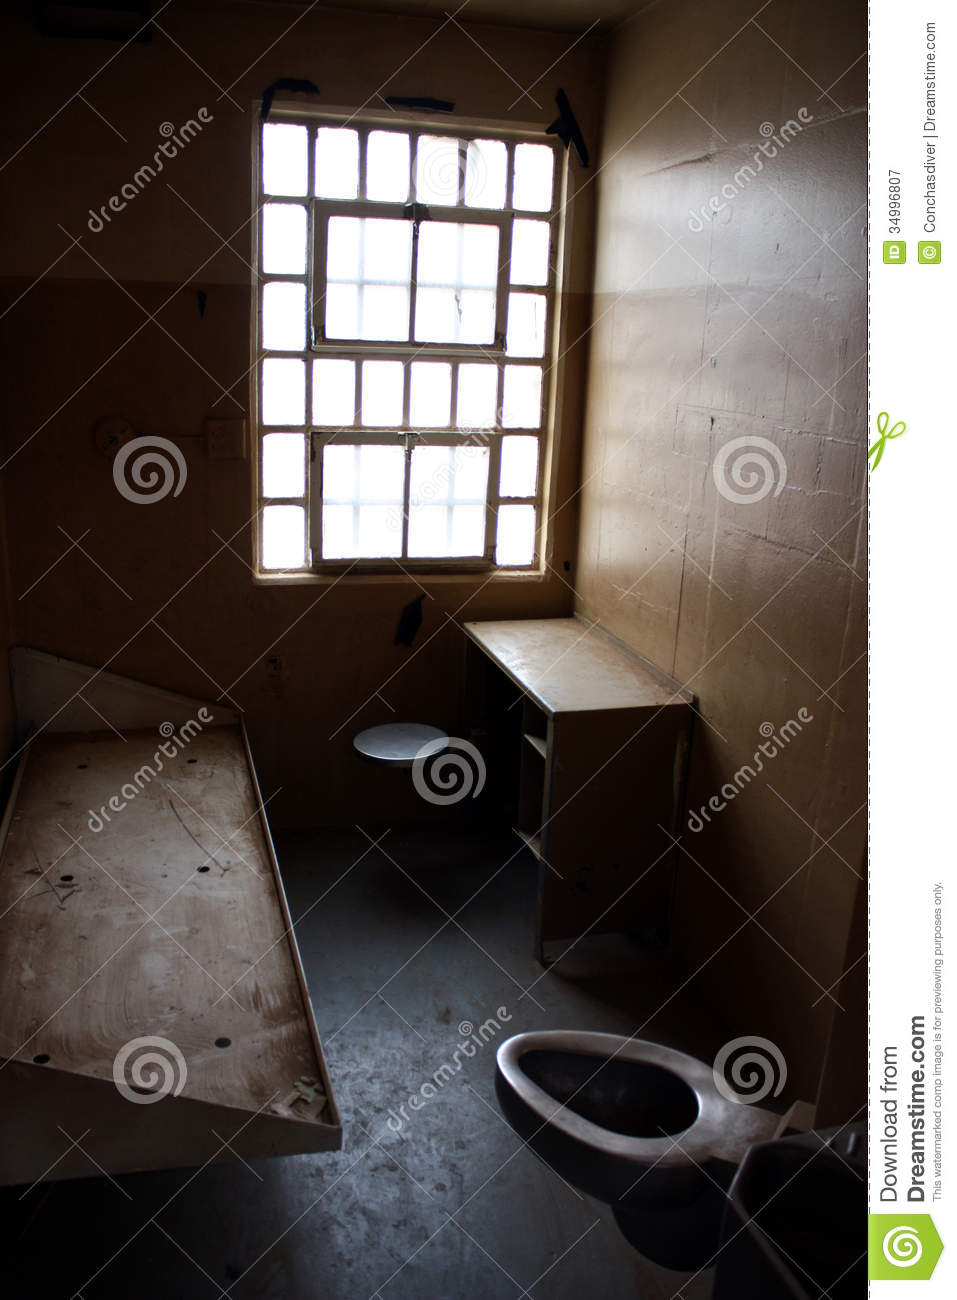 Solitary Confinement Royalty Free Stock Photography.